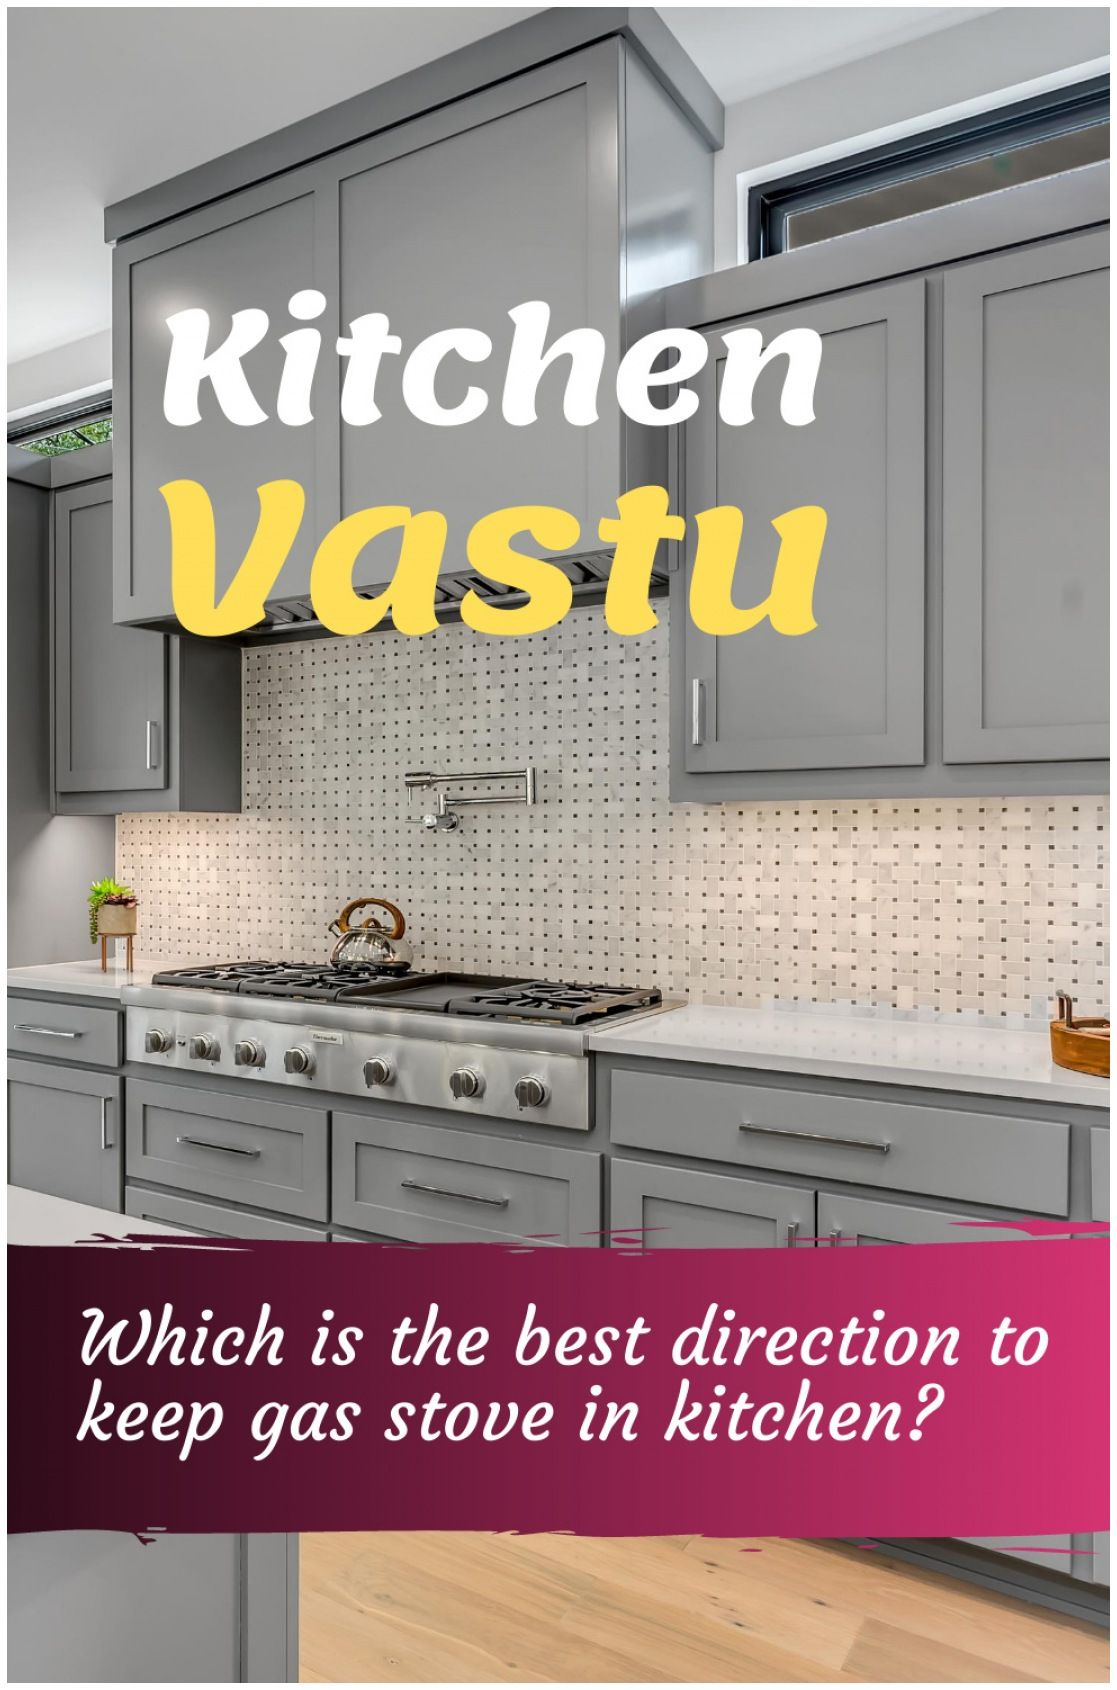 The Best Direction Gas Stove In Kitchen As Per Vastu